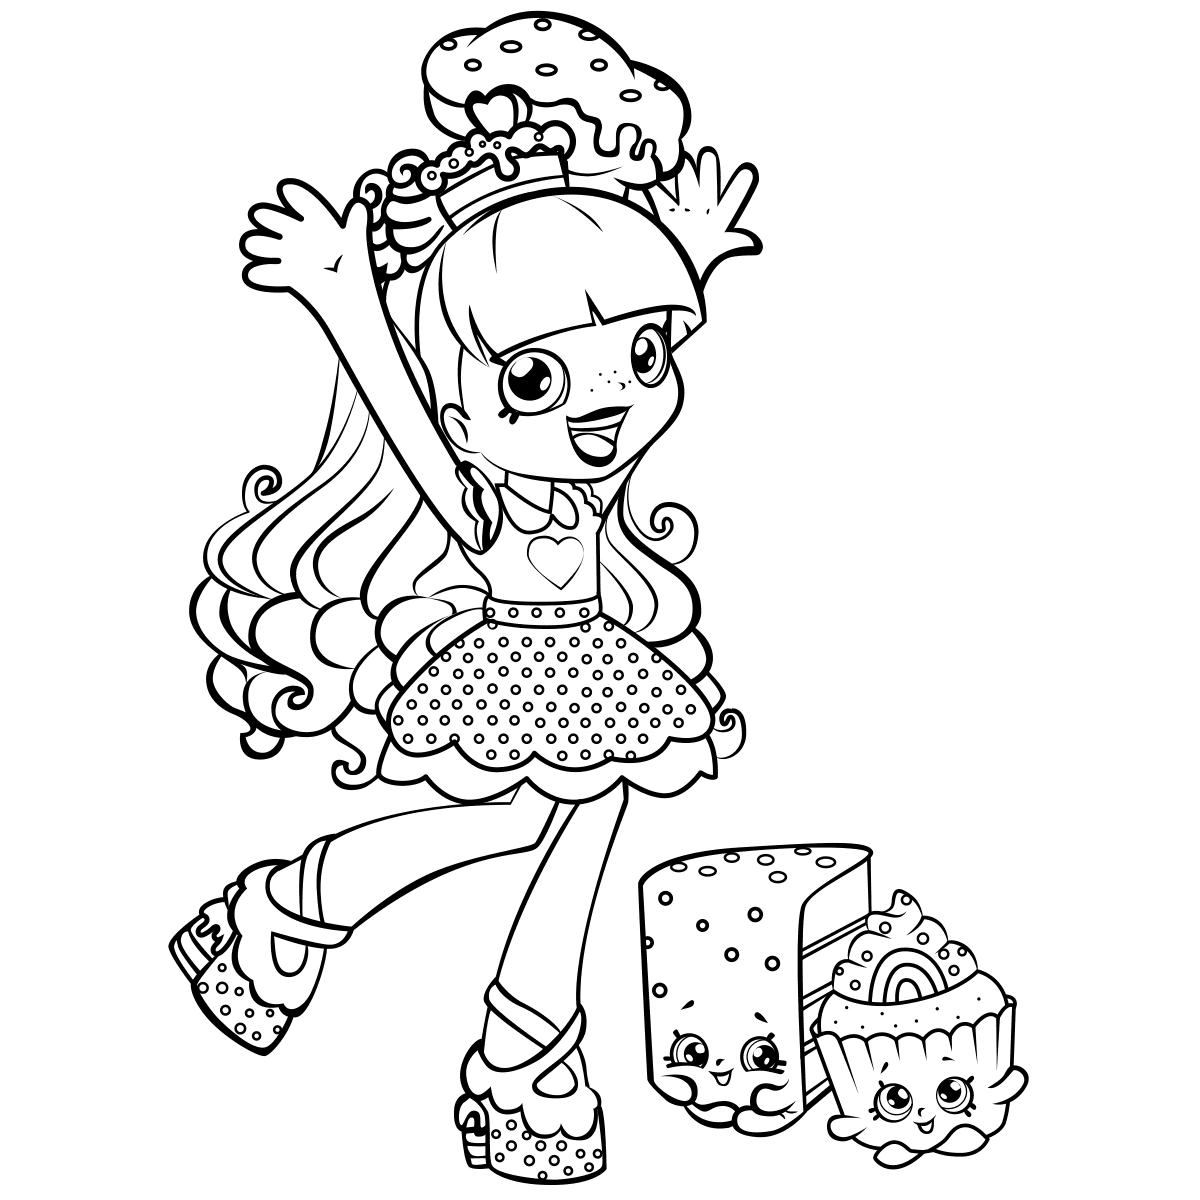 Coloring Rocks Free Coloring Pages Coloring Pages Shopkins Colouring Pages